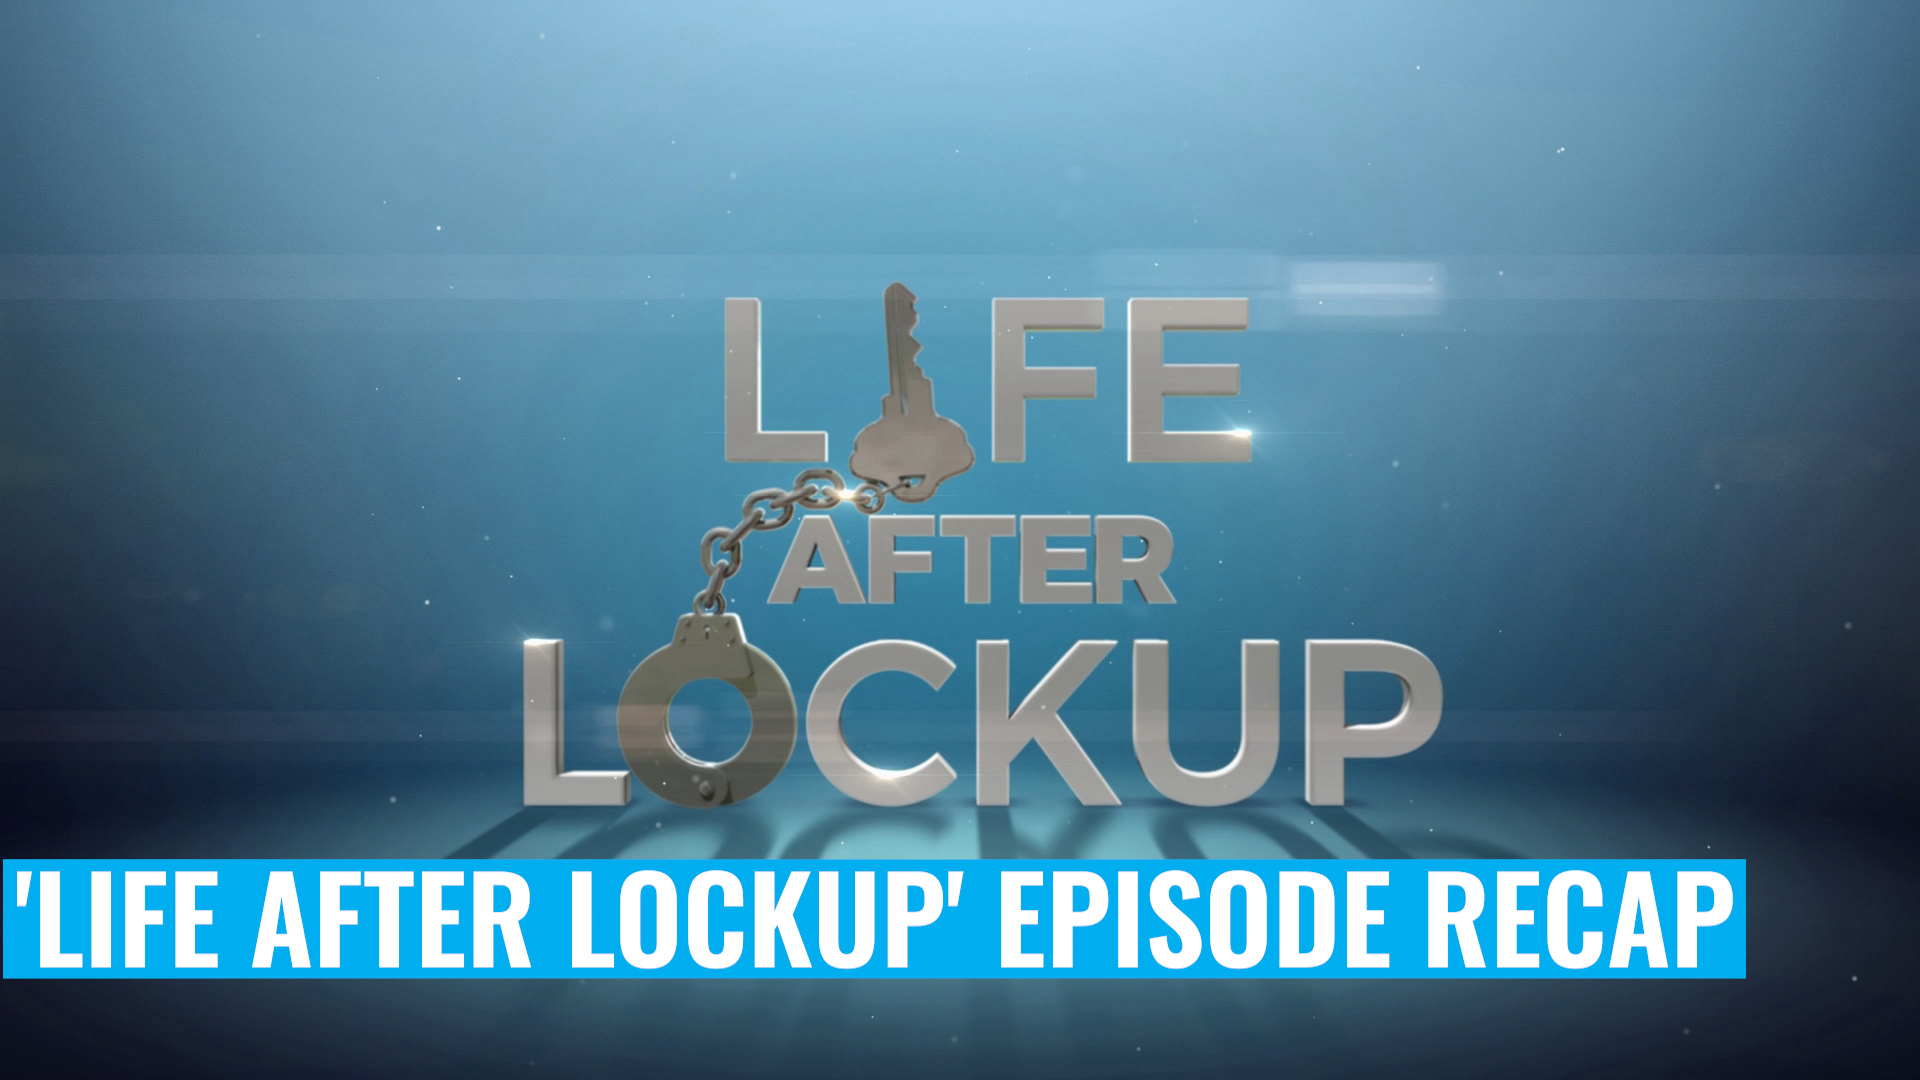 OMG-Worthy Moments From 'Life After Lockup'